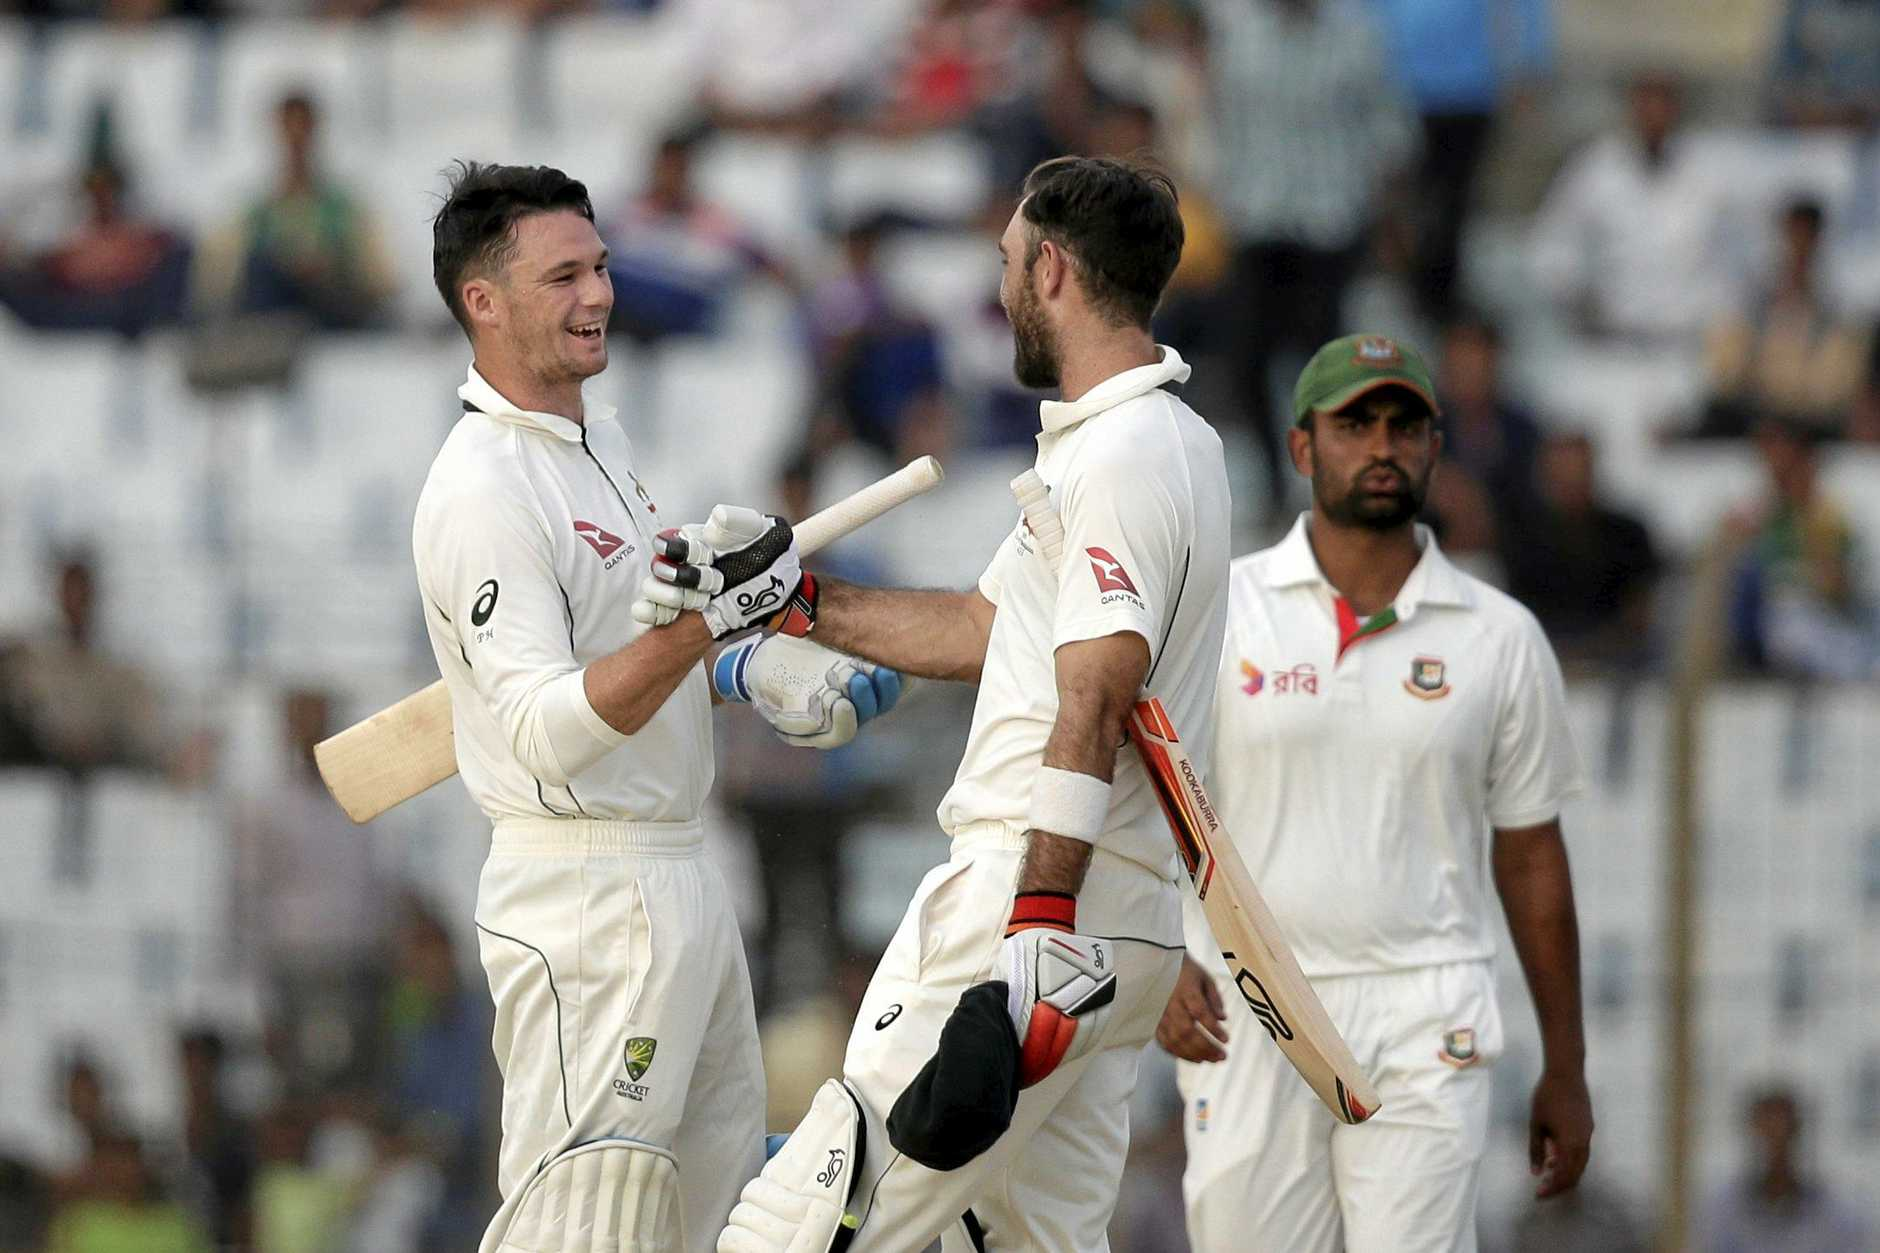 Australia's Peter Handscomb, left, and Glenn Maxwell, center, celebrate their victory over Bangladesh, as Bangladesh's Tamim Iqbal watches during the fourth day of the second test cricket match in Chittagong, Bangladesh, Thursday, Sept. 7, 2017. (AP Photo/A.M. Ahad)